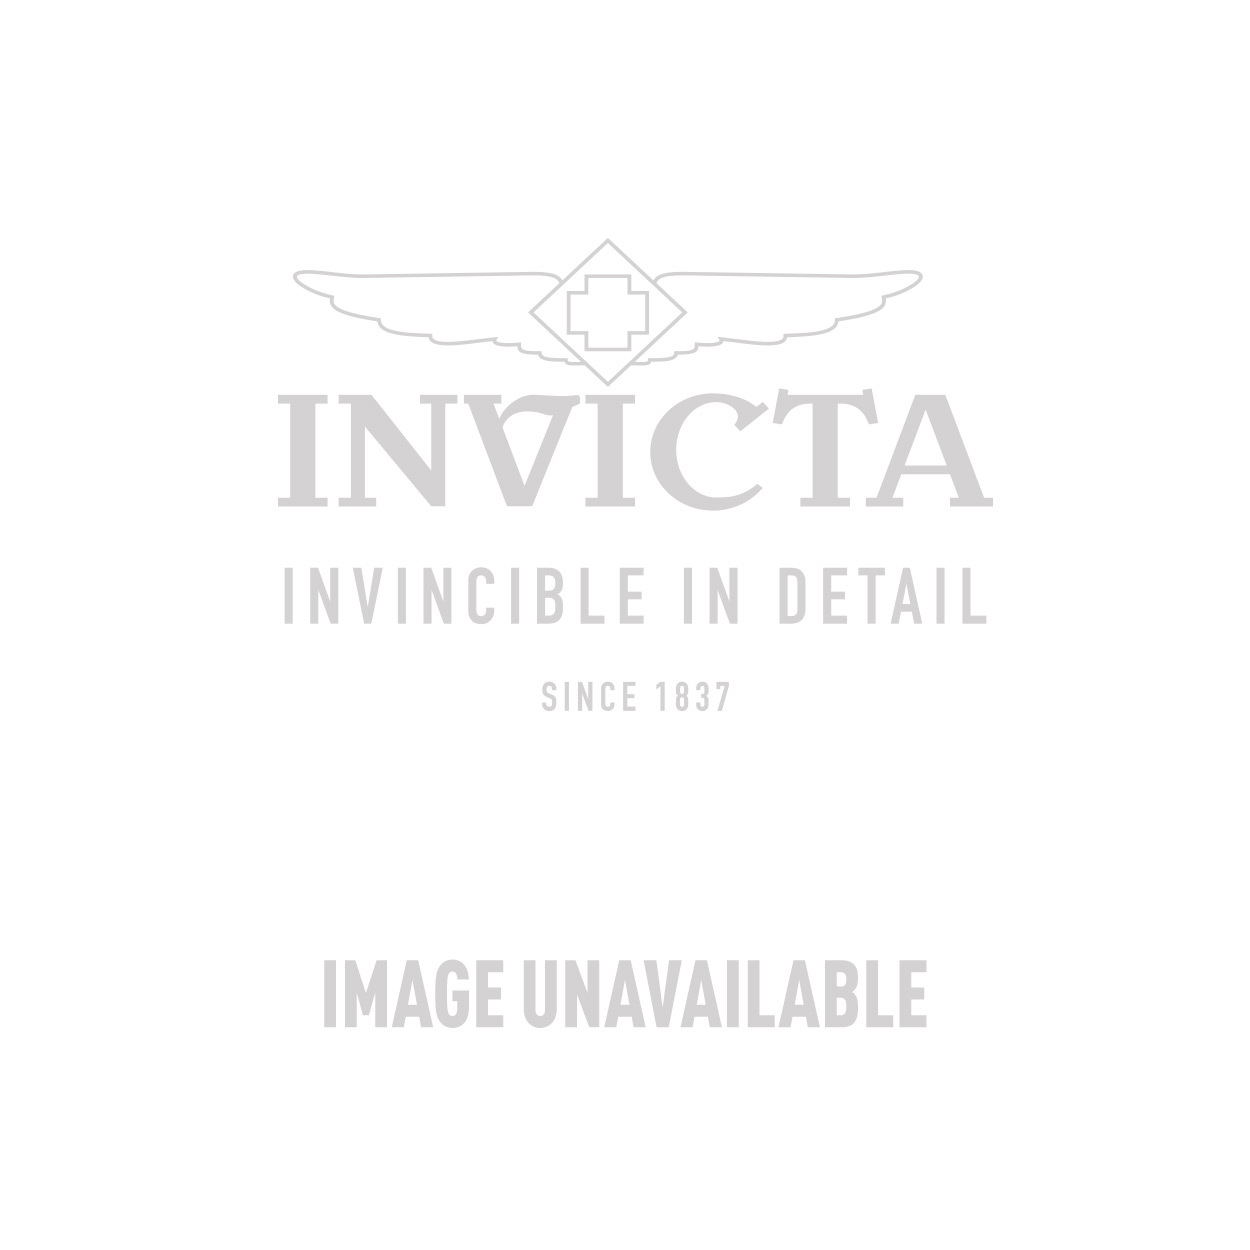 Invicta Speedway Swiss Movement Quartz Watch - Black case with Black tone Stainless Steel band - Model 20341